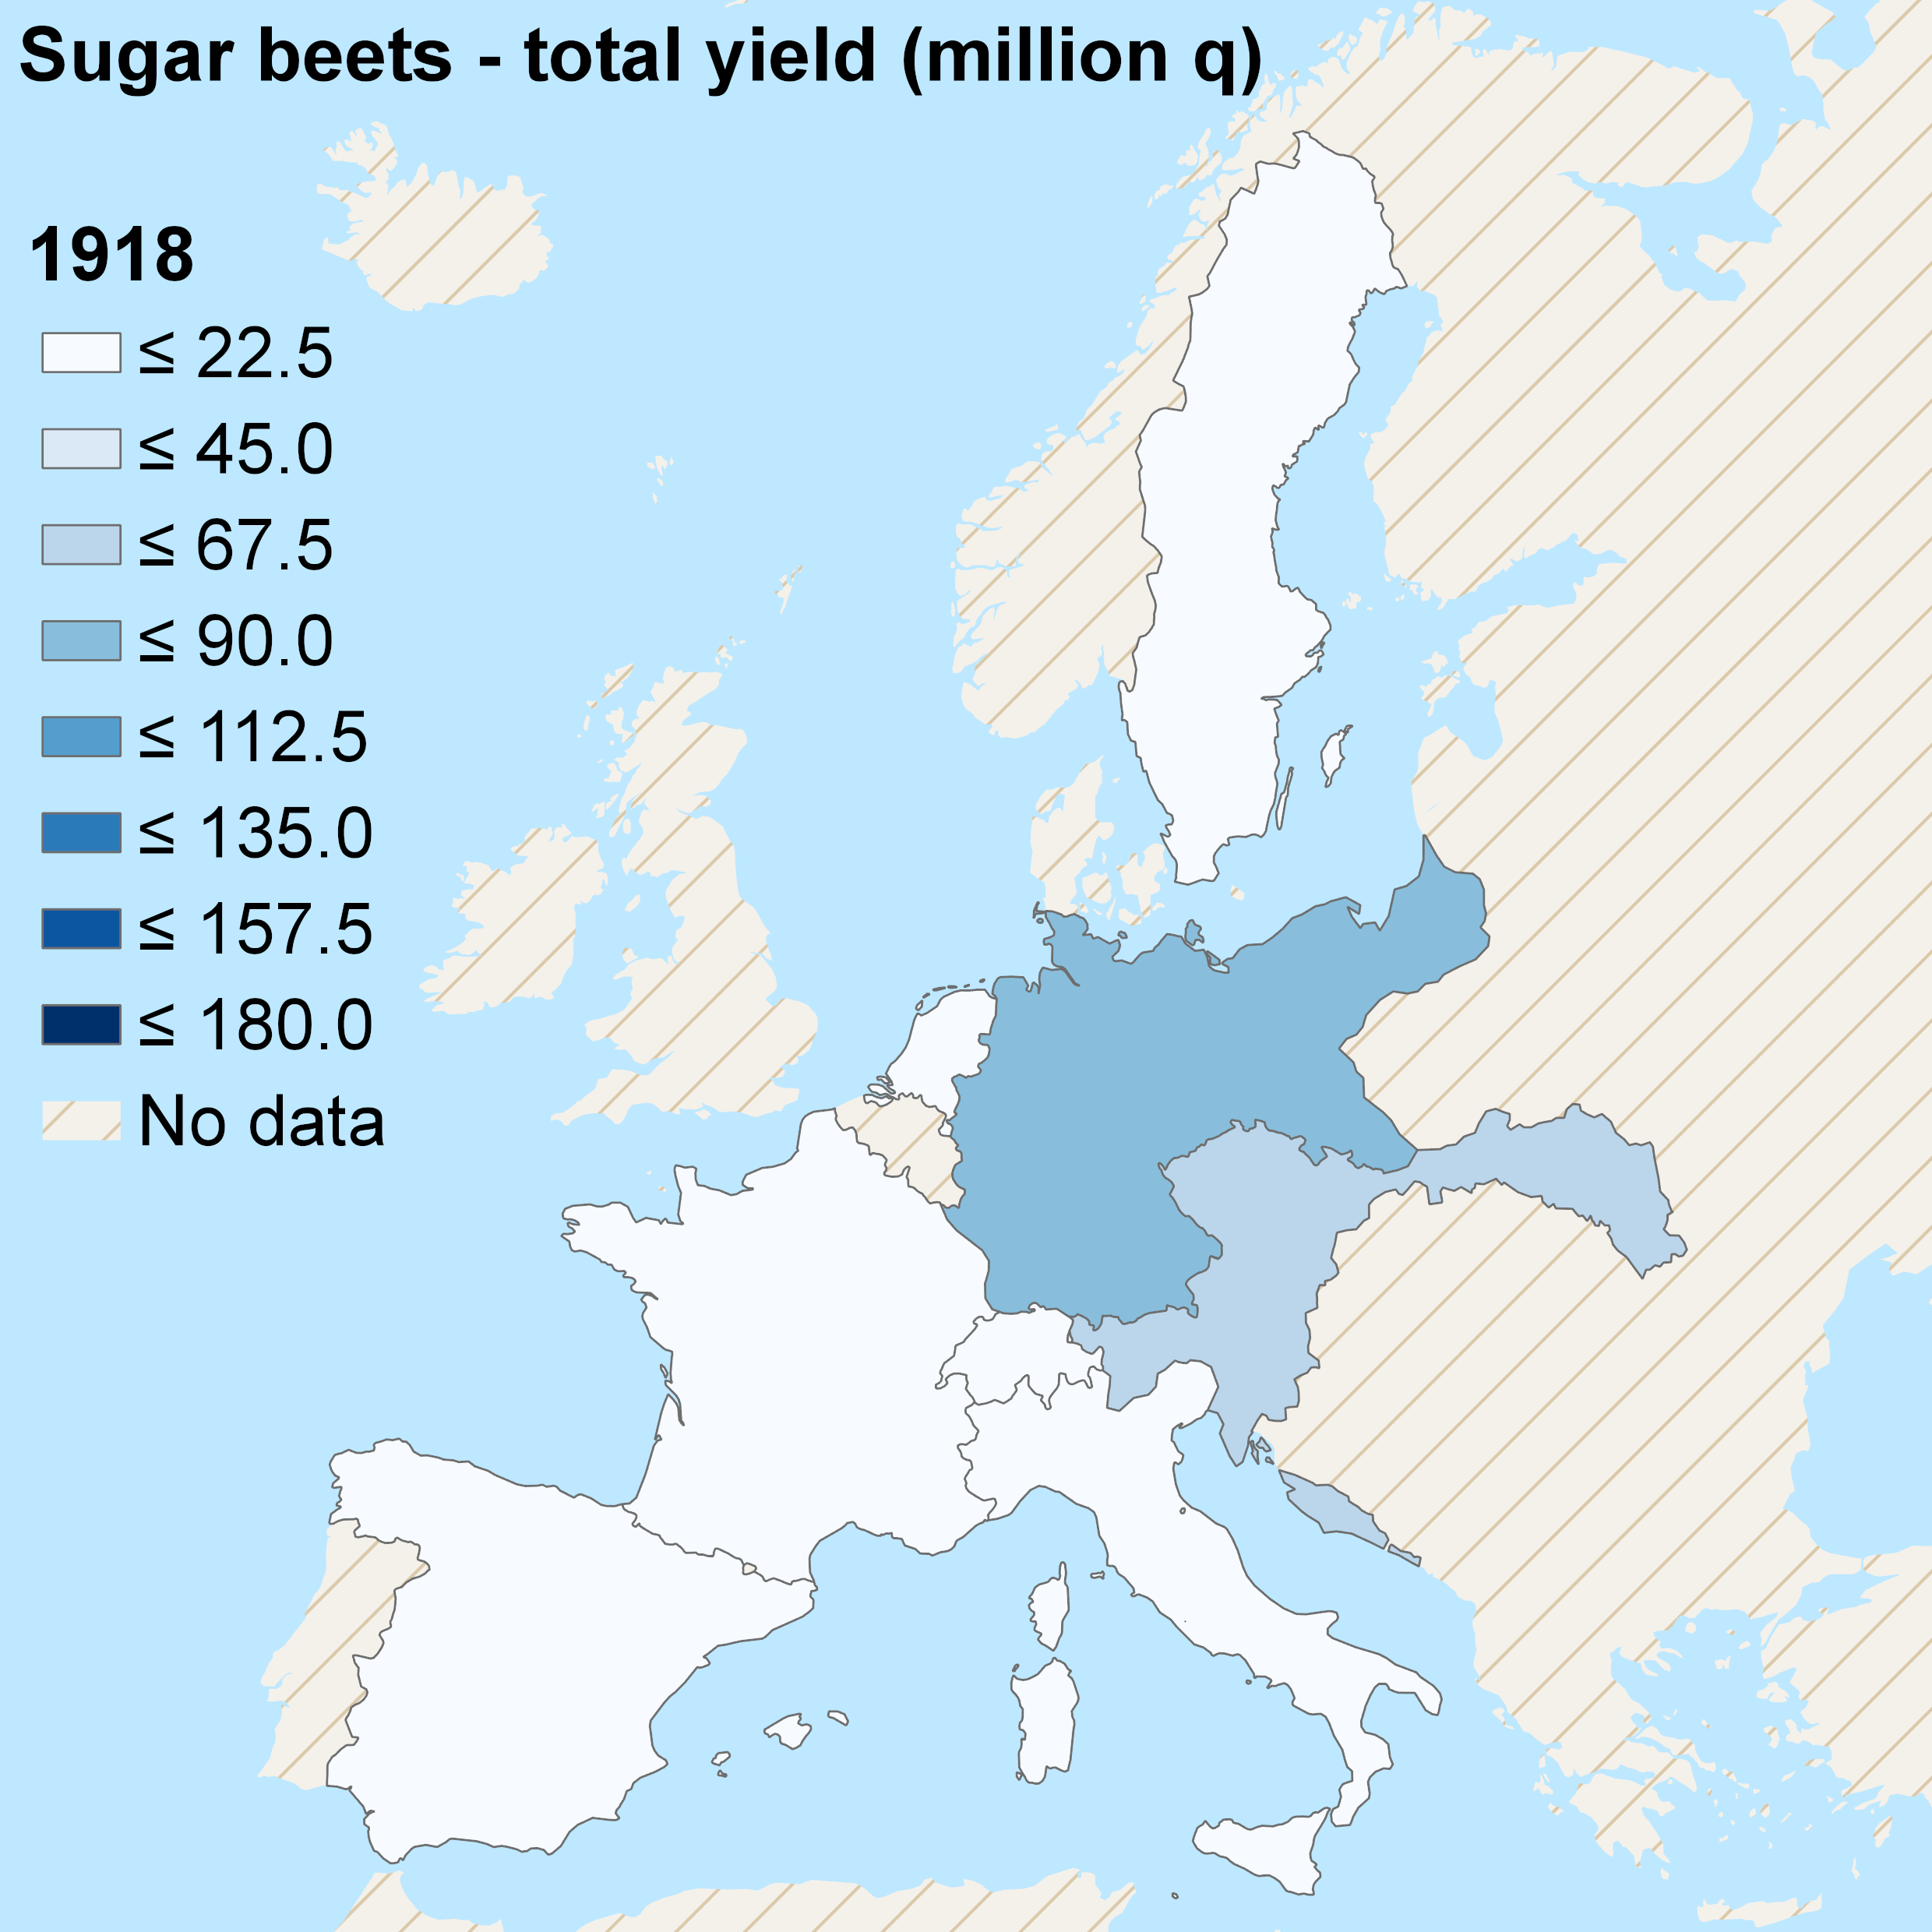 sugarbeets-total-1918